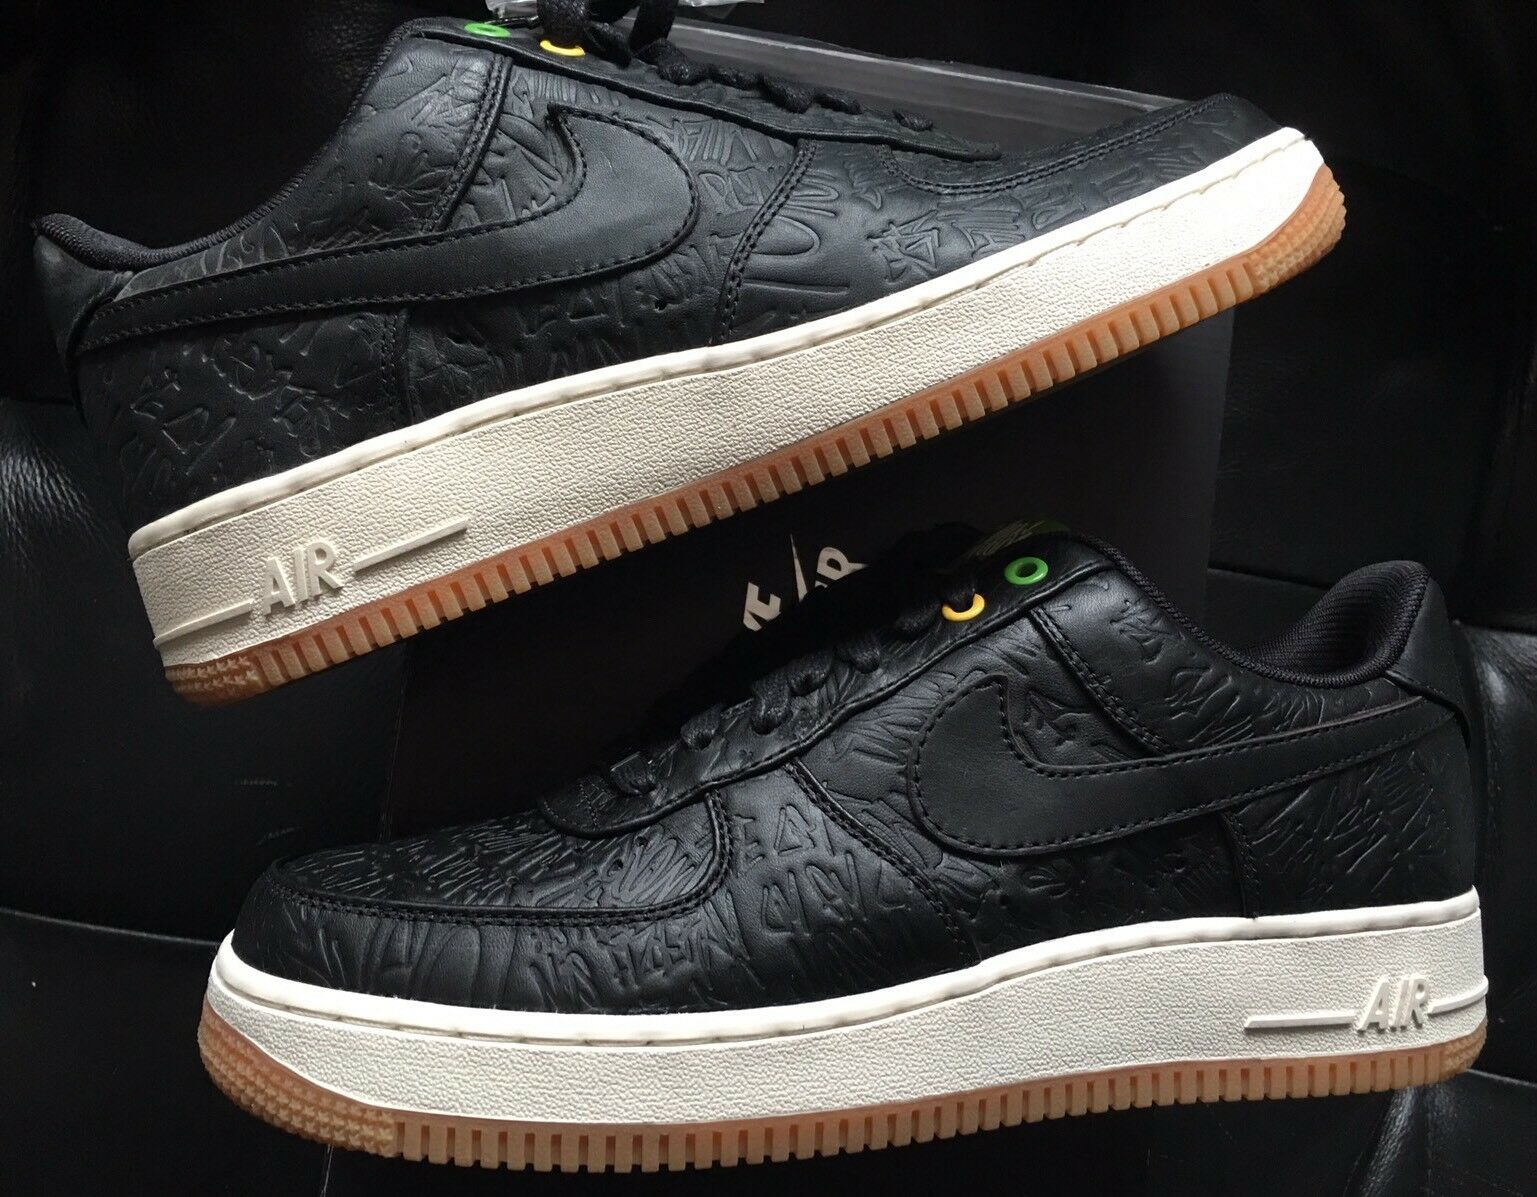 premium selection c7040 1fbd4 ... discount code for nike air force 1 prm low prm 1 qs brasil reduccion de  precio